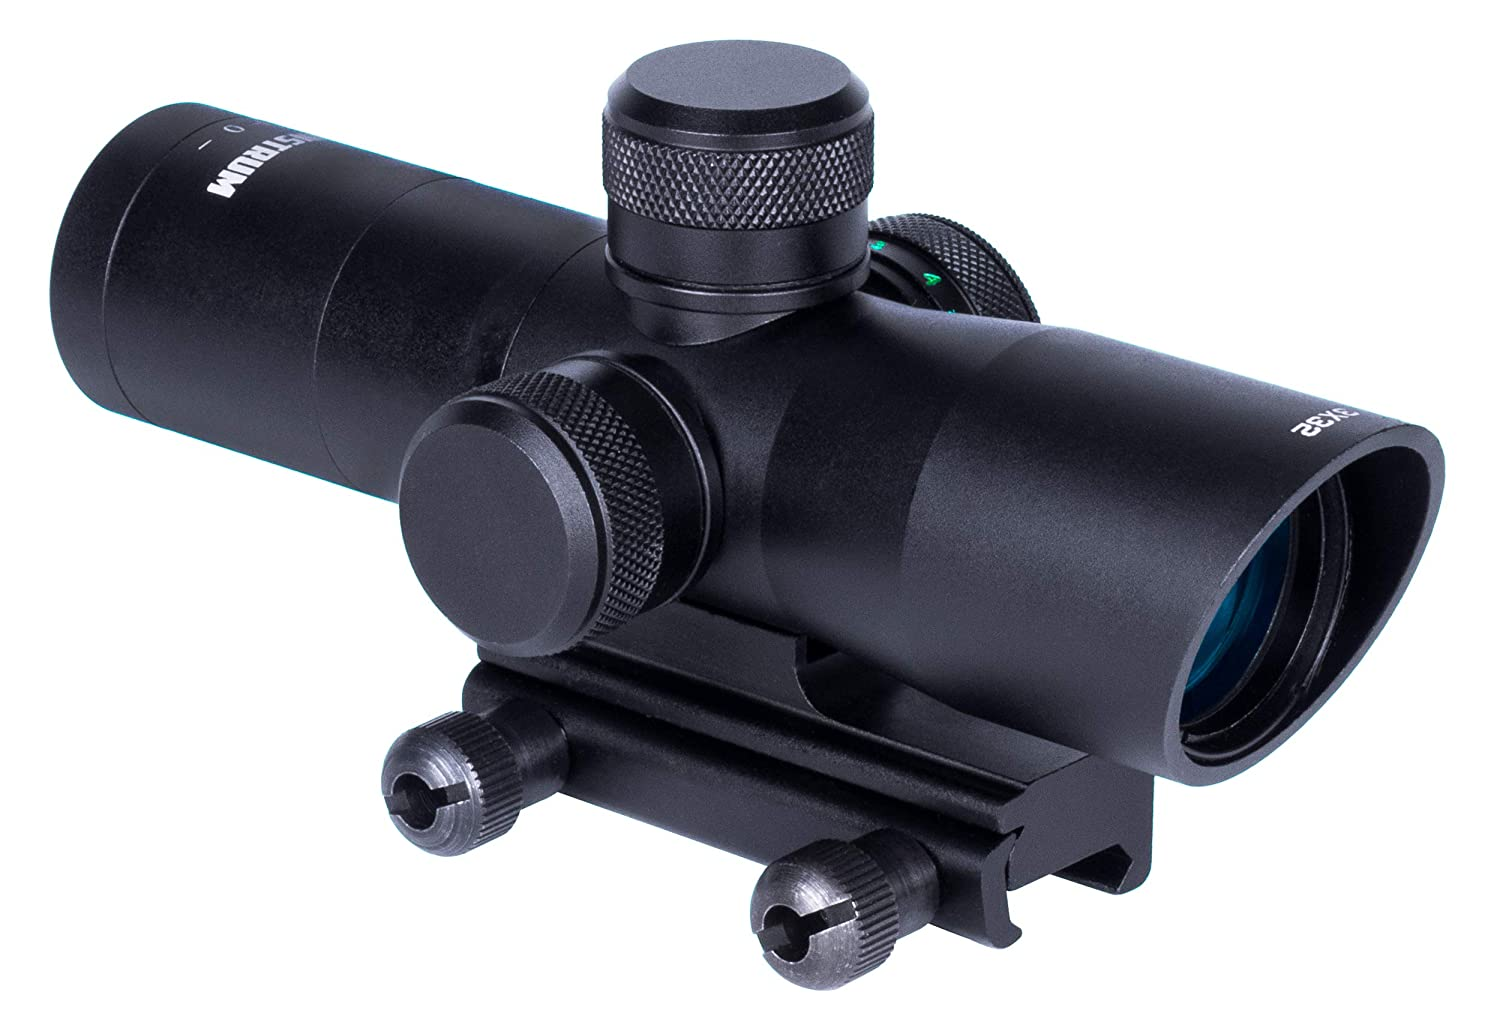 Monstrum Tactical Stealth Series 3X Magnification Rifle Scope